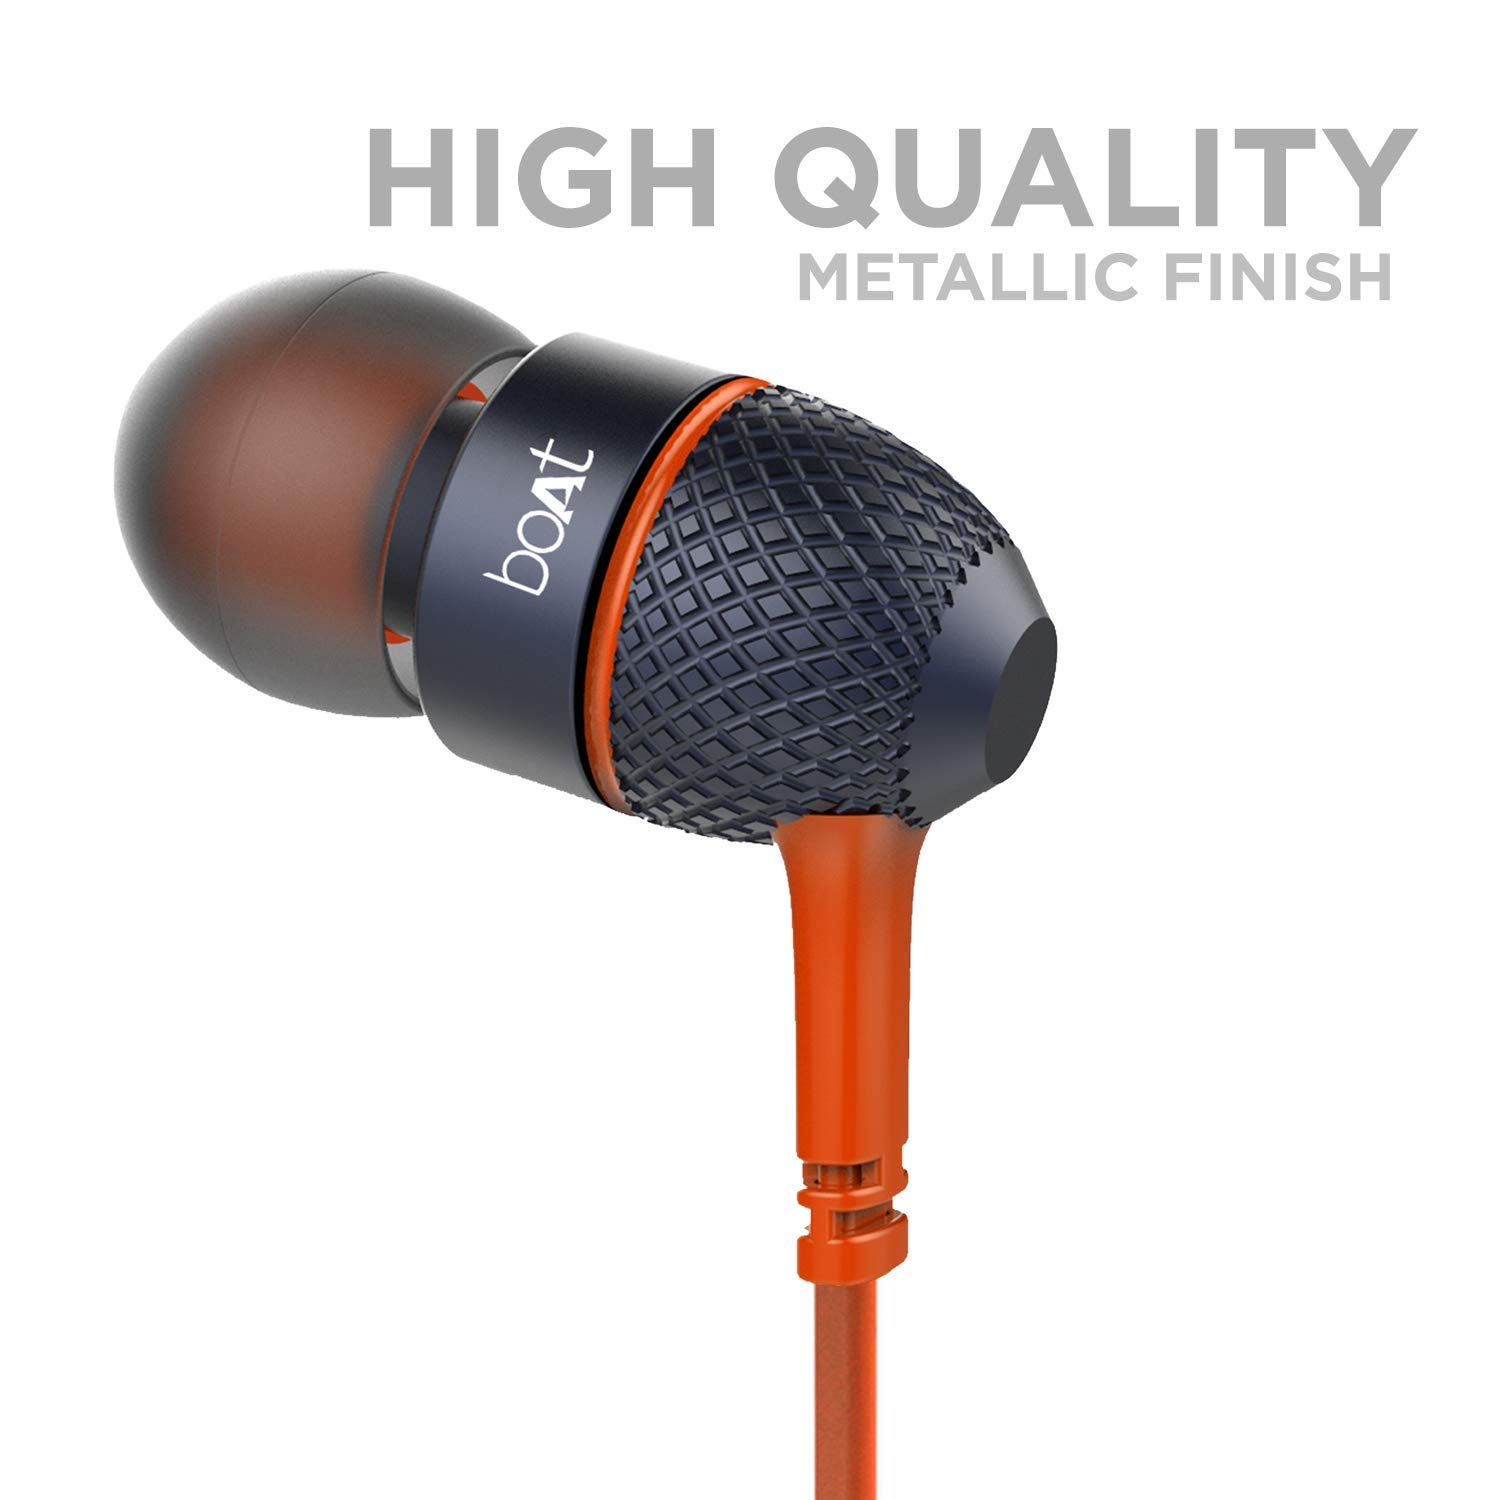 boAt BassHeads 225 in-Ear Wired Earphones with Super Extra Bass, Metallic Finish, Tangle-Free Cable and Gold Plated Angled Jack (Molten Orange)